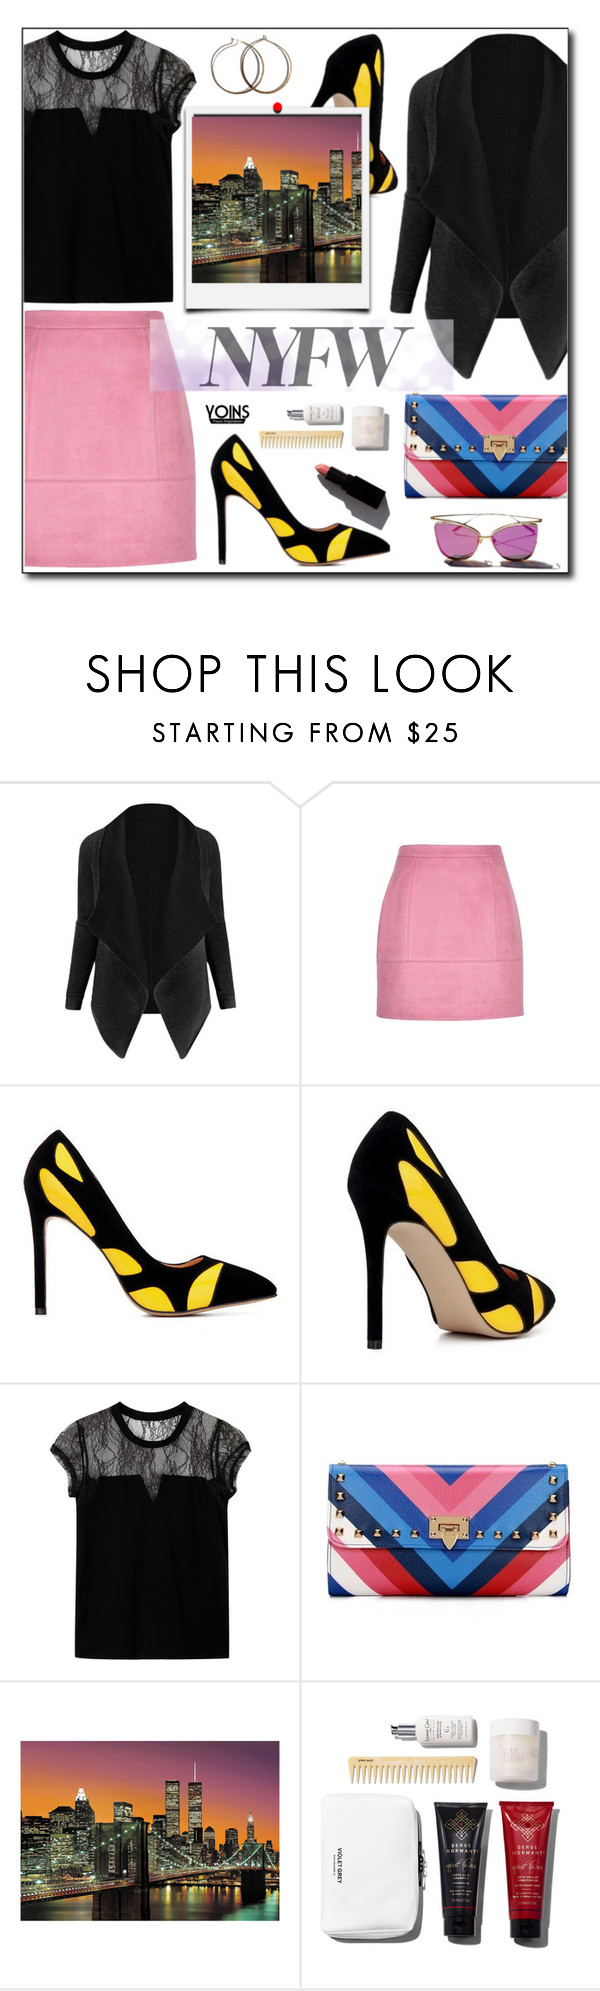 """""""3.5 NYFW yoins"""" by wannanna ❤ liked on Polyvore featuring Brewster Home Fashions and Garance Doré"""